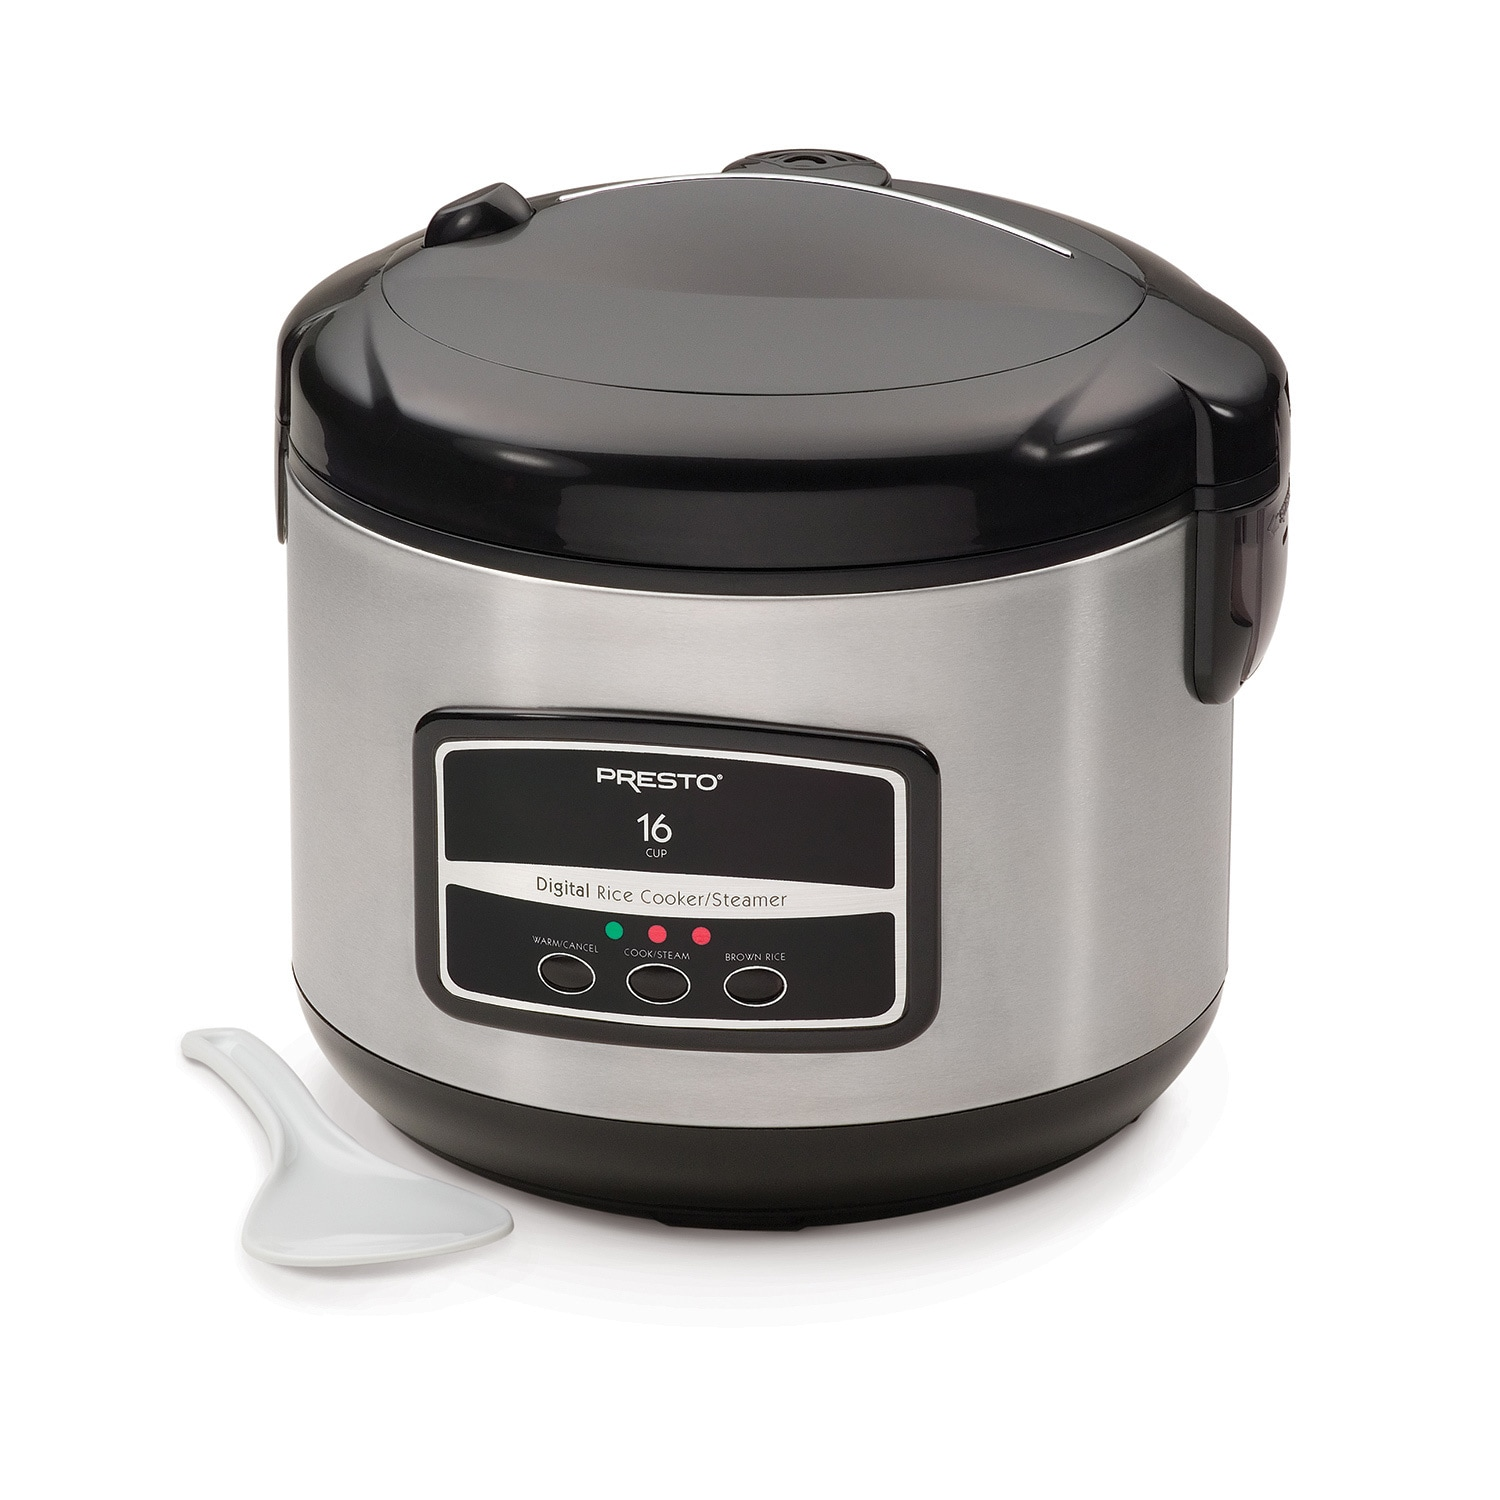 Presto Stainless Steel (Silver) 16-cup Digital Rice Cooke...